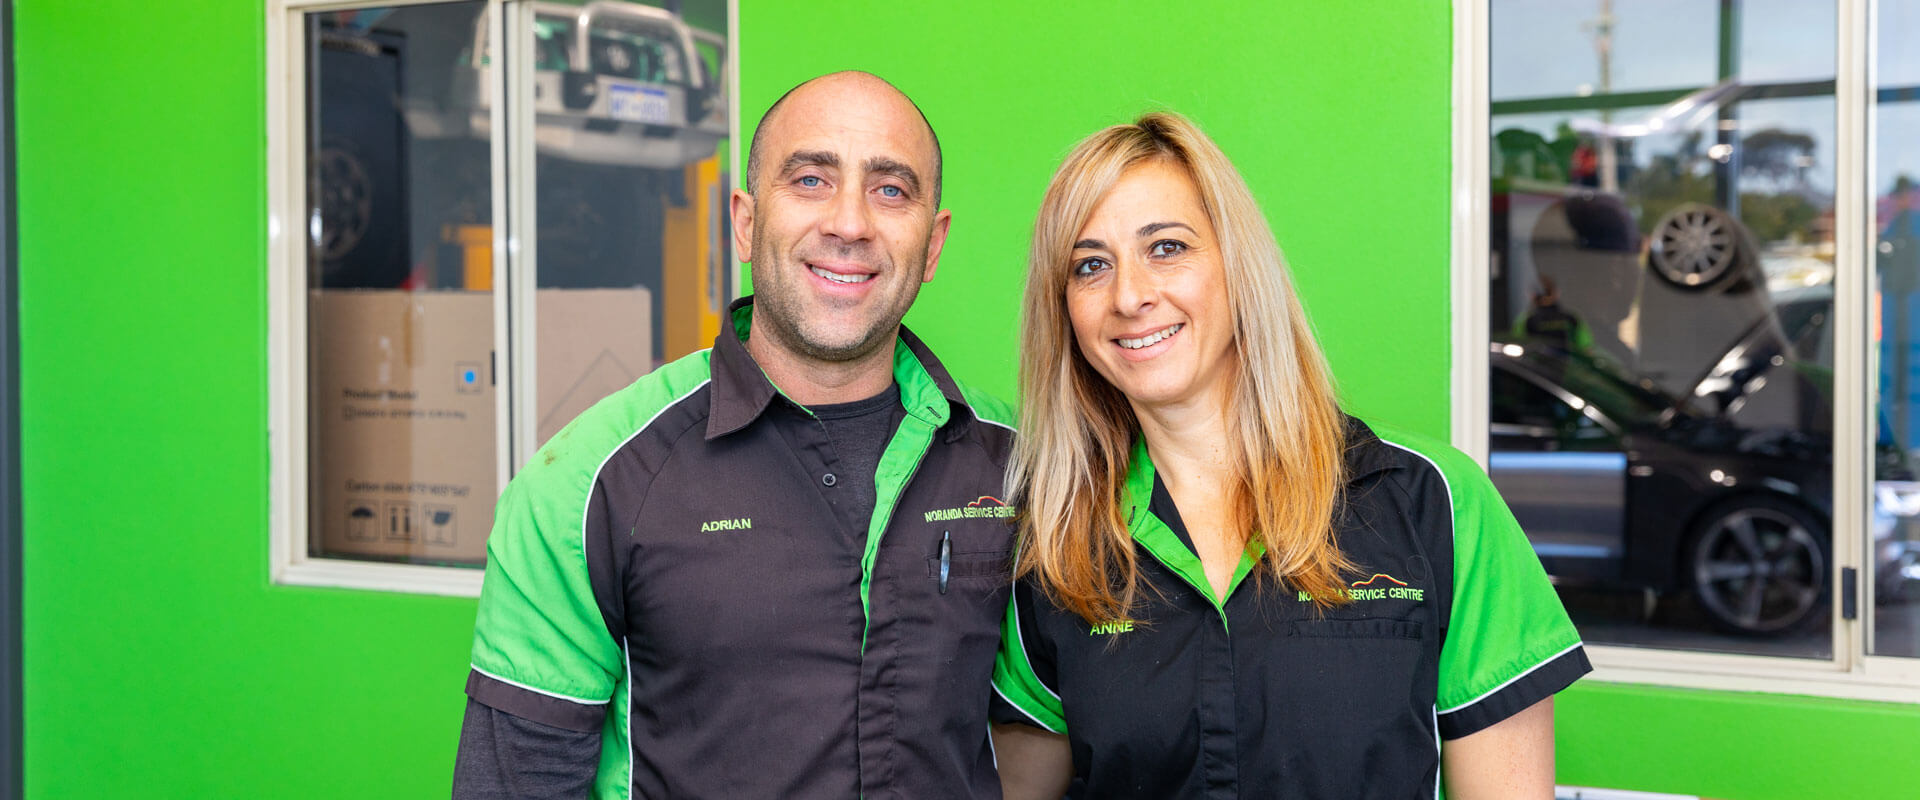 Noranda Service Centre Homepage Image - Car Mechanic and Owners - Anne and Adrian